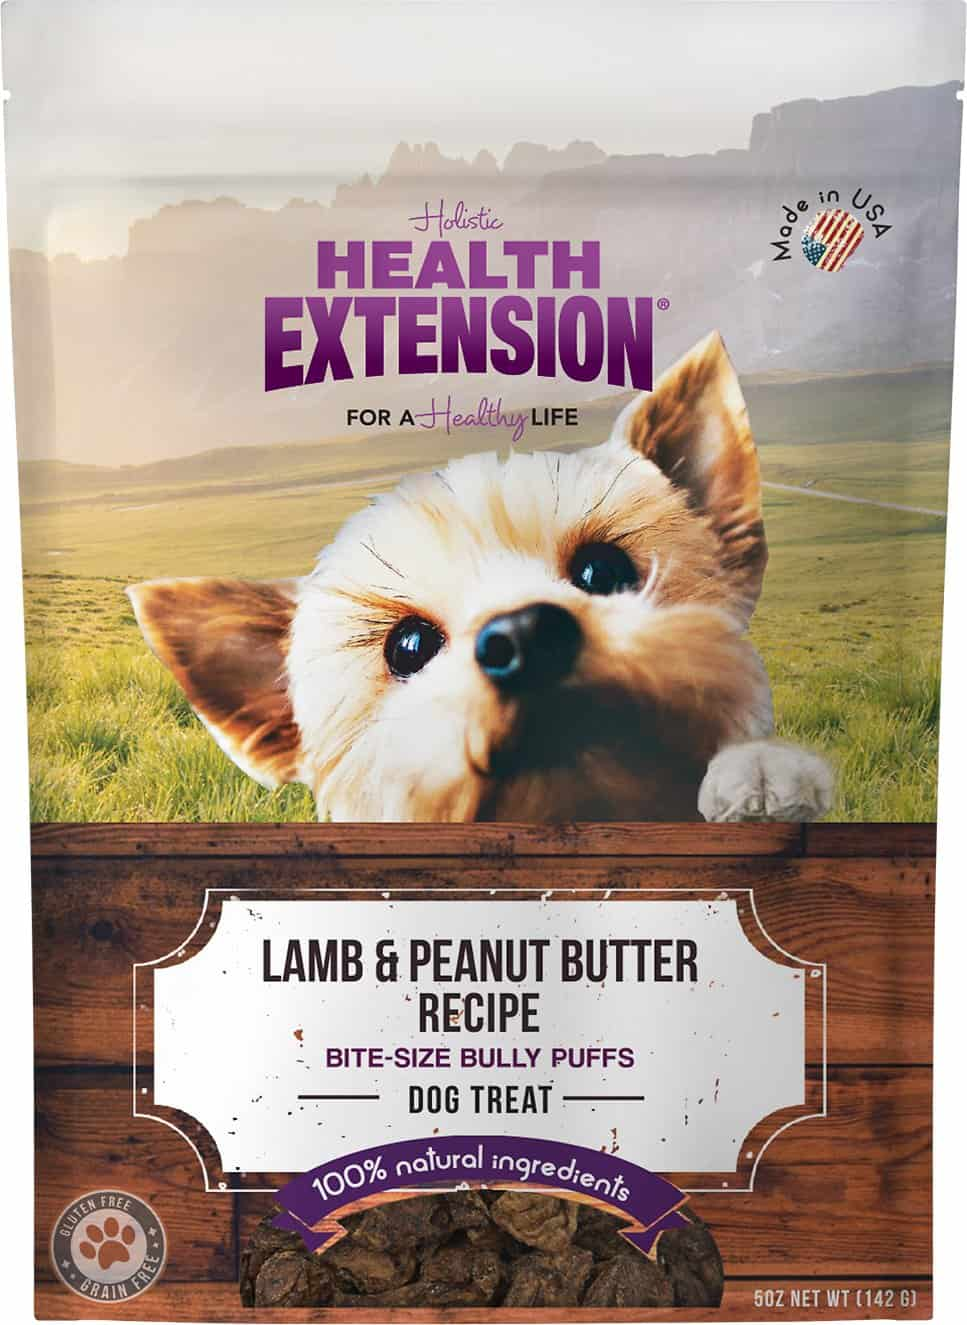 Health Extension Dog Food Review 2020: Better Dog Food Option? 20